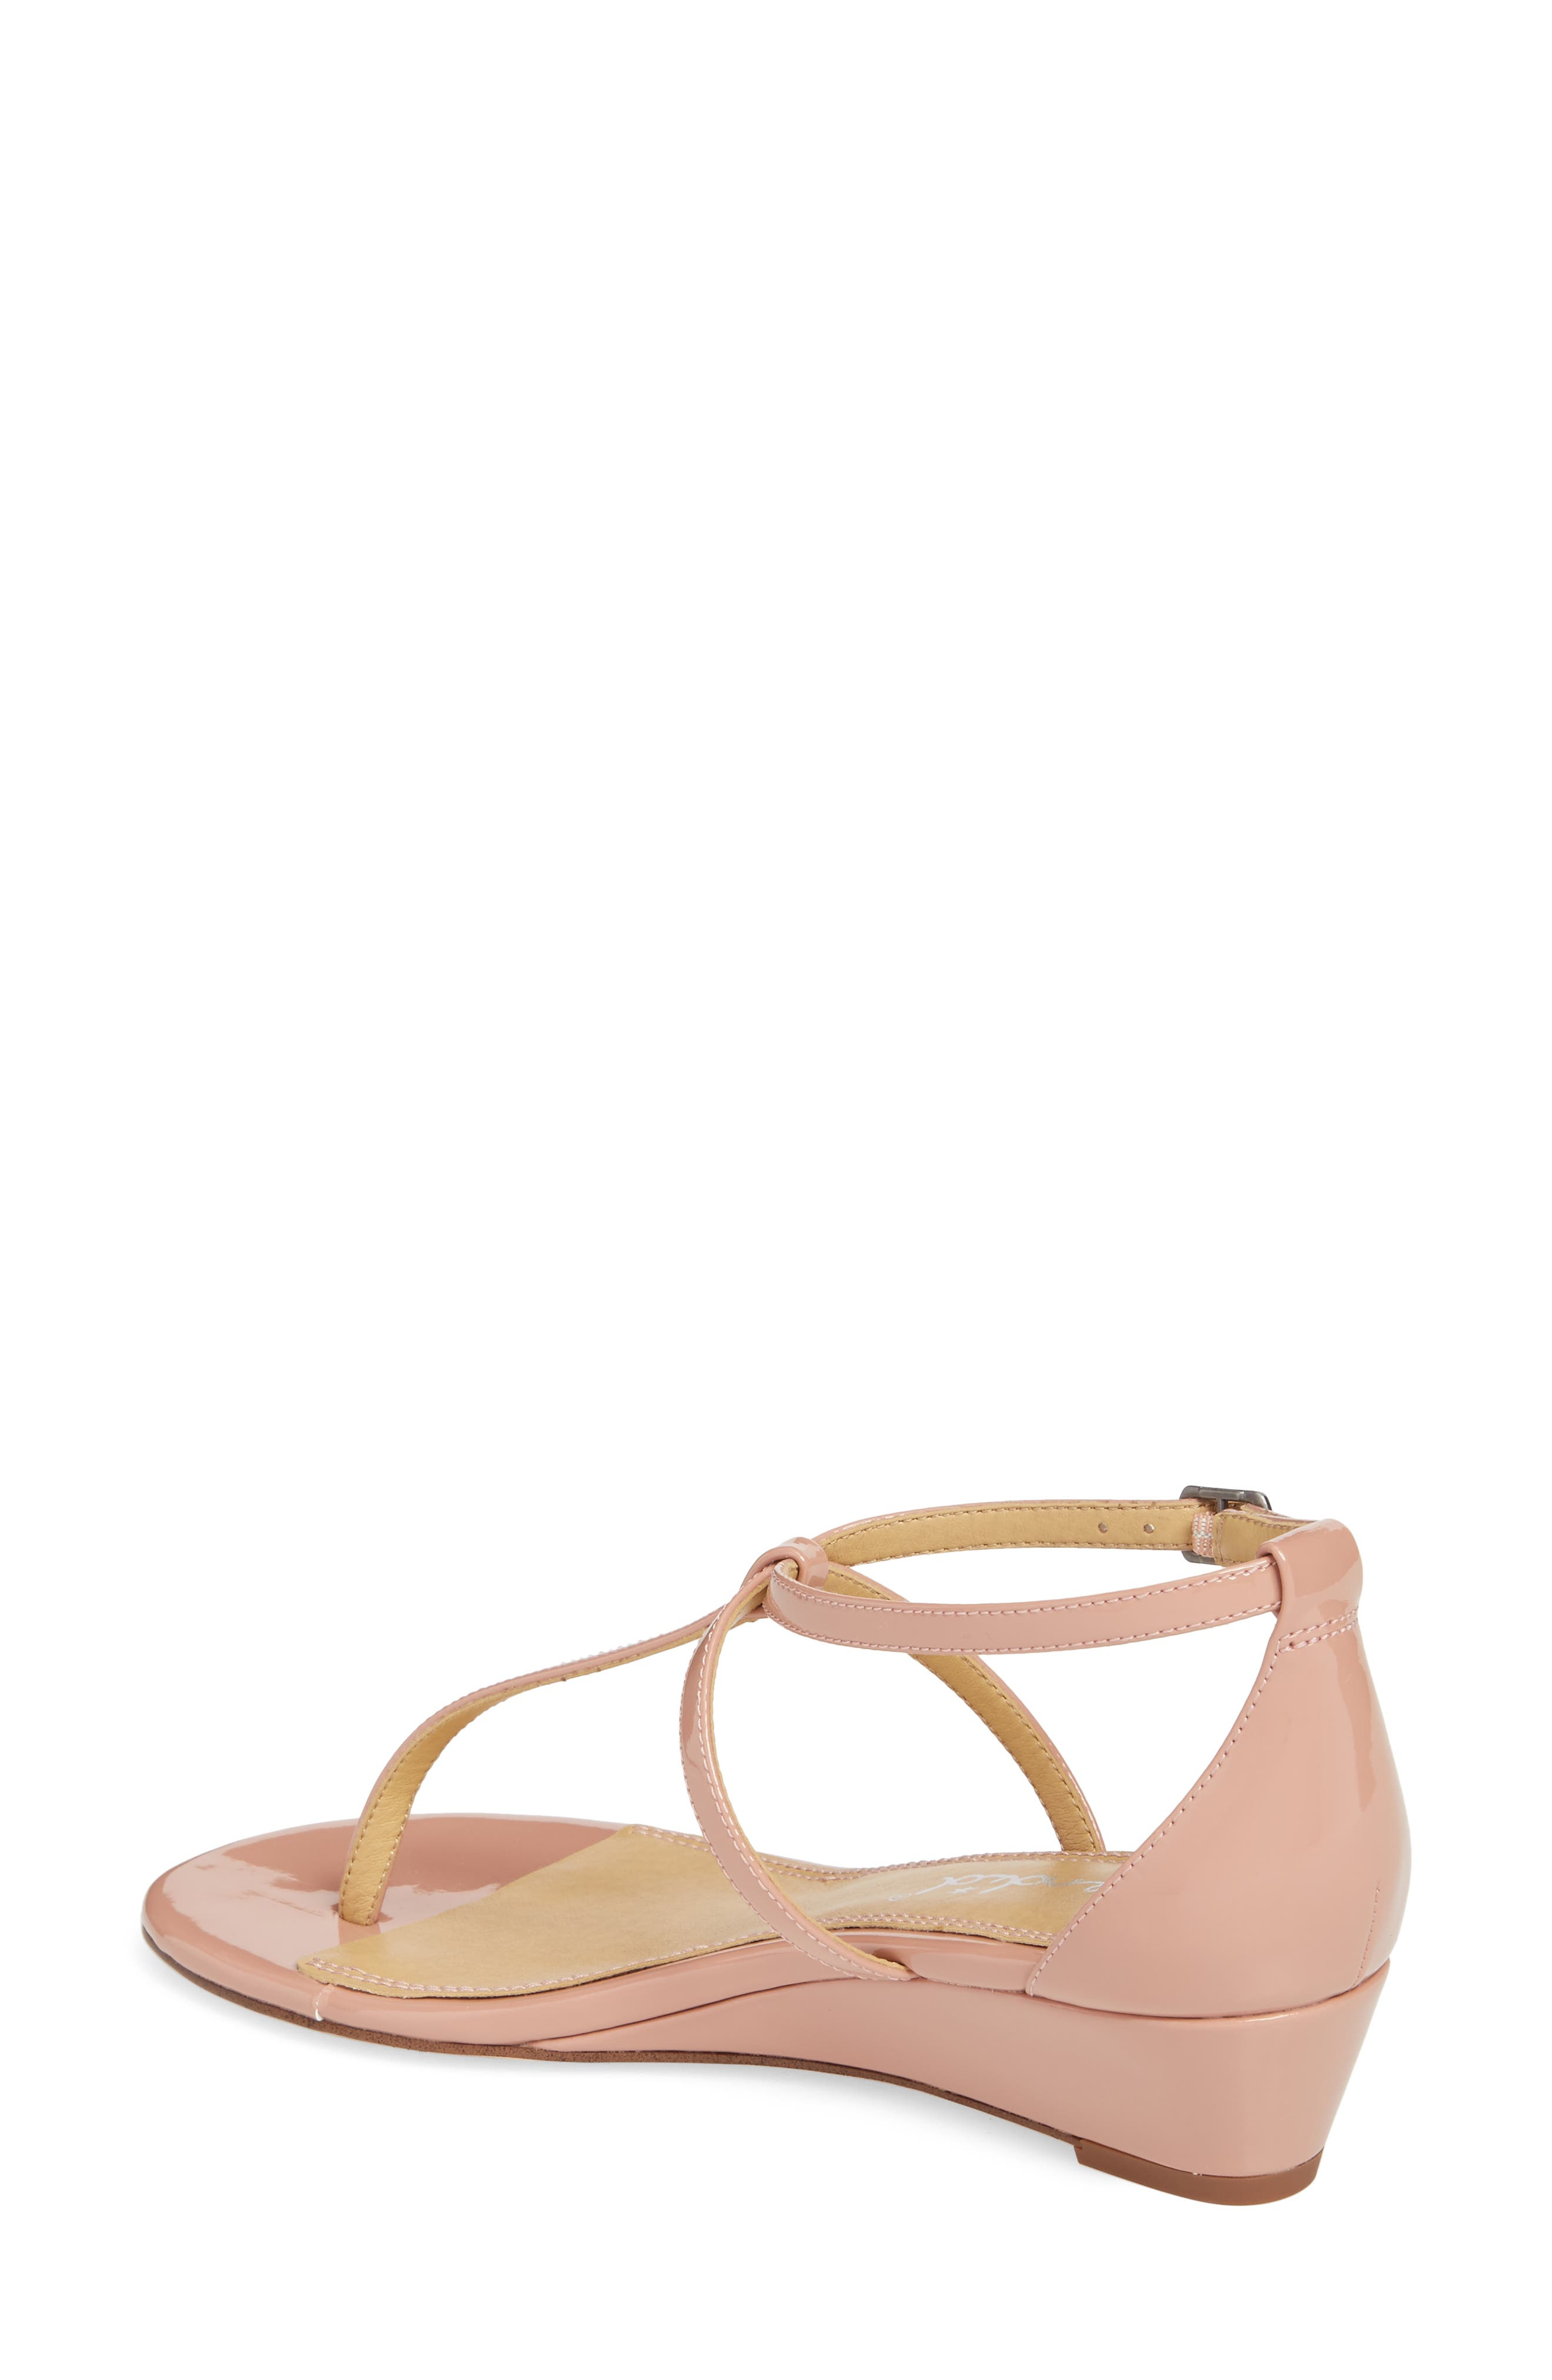 Bryce T-Strap Wedge Sandal,                             Alternate thumbnail 2, color,                             DARK BLUSH PATENT